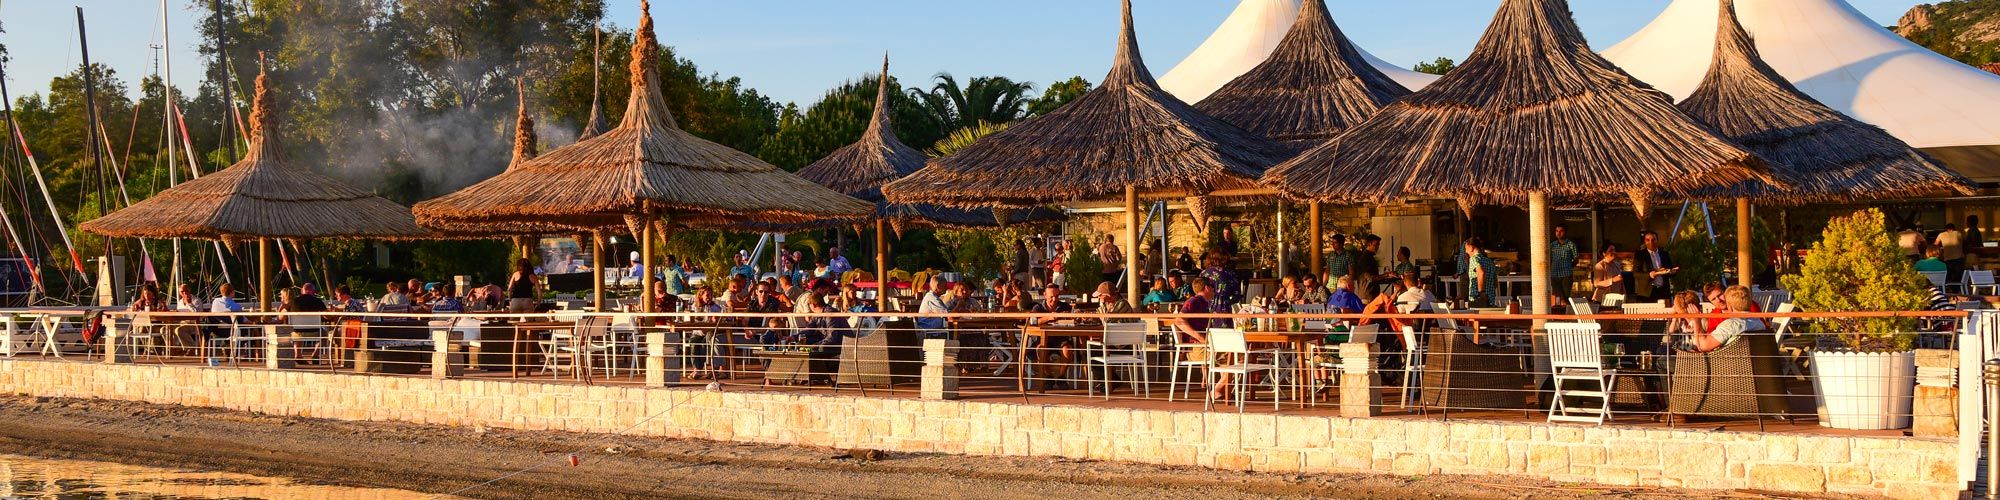 Phokaia beach bar